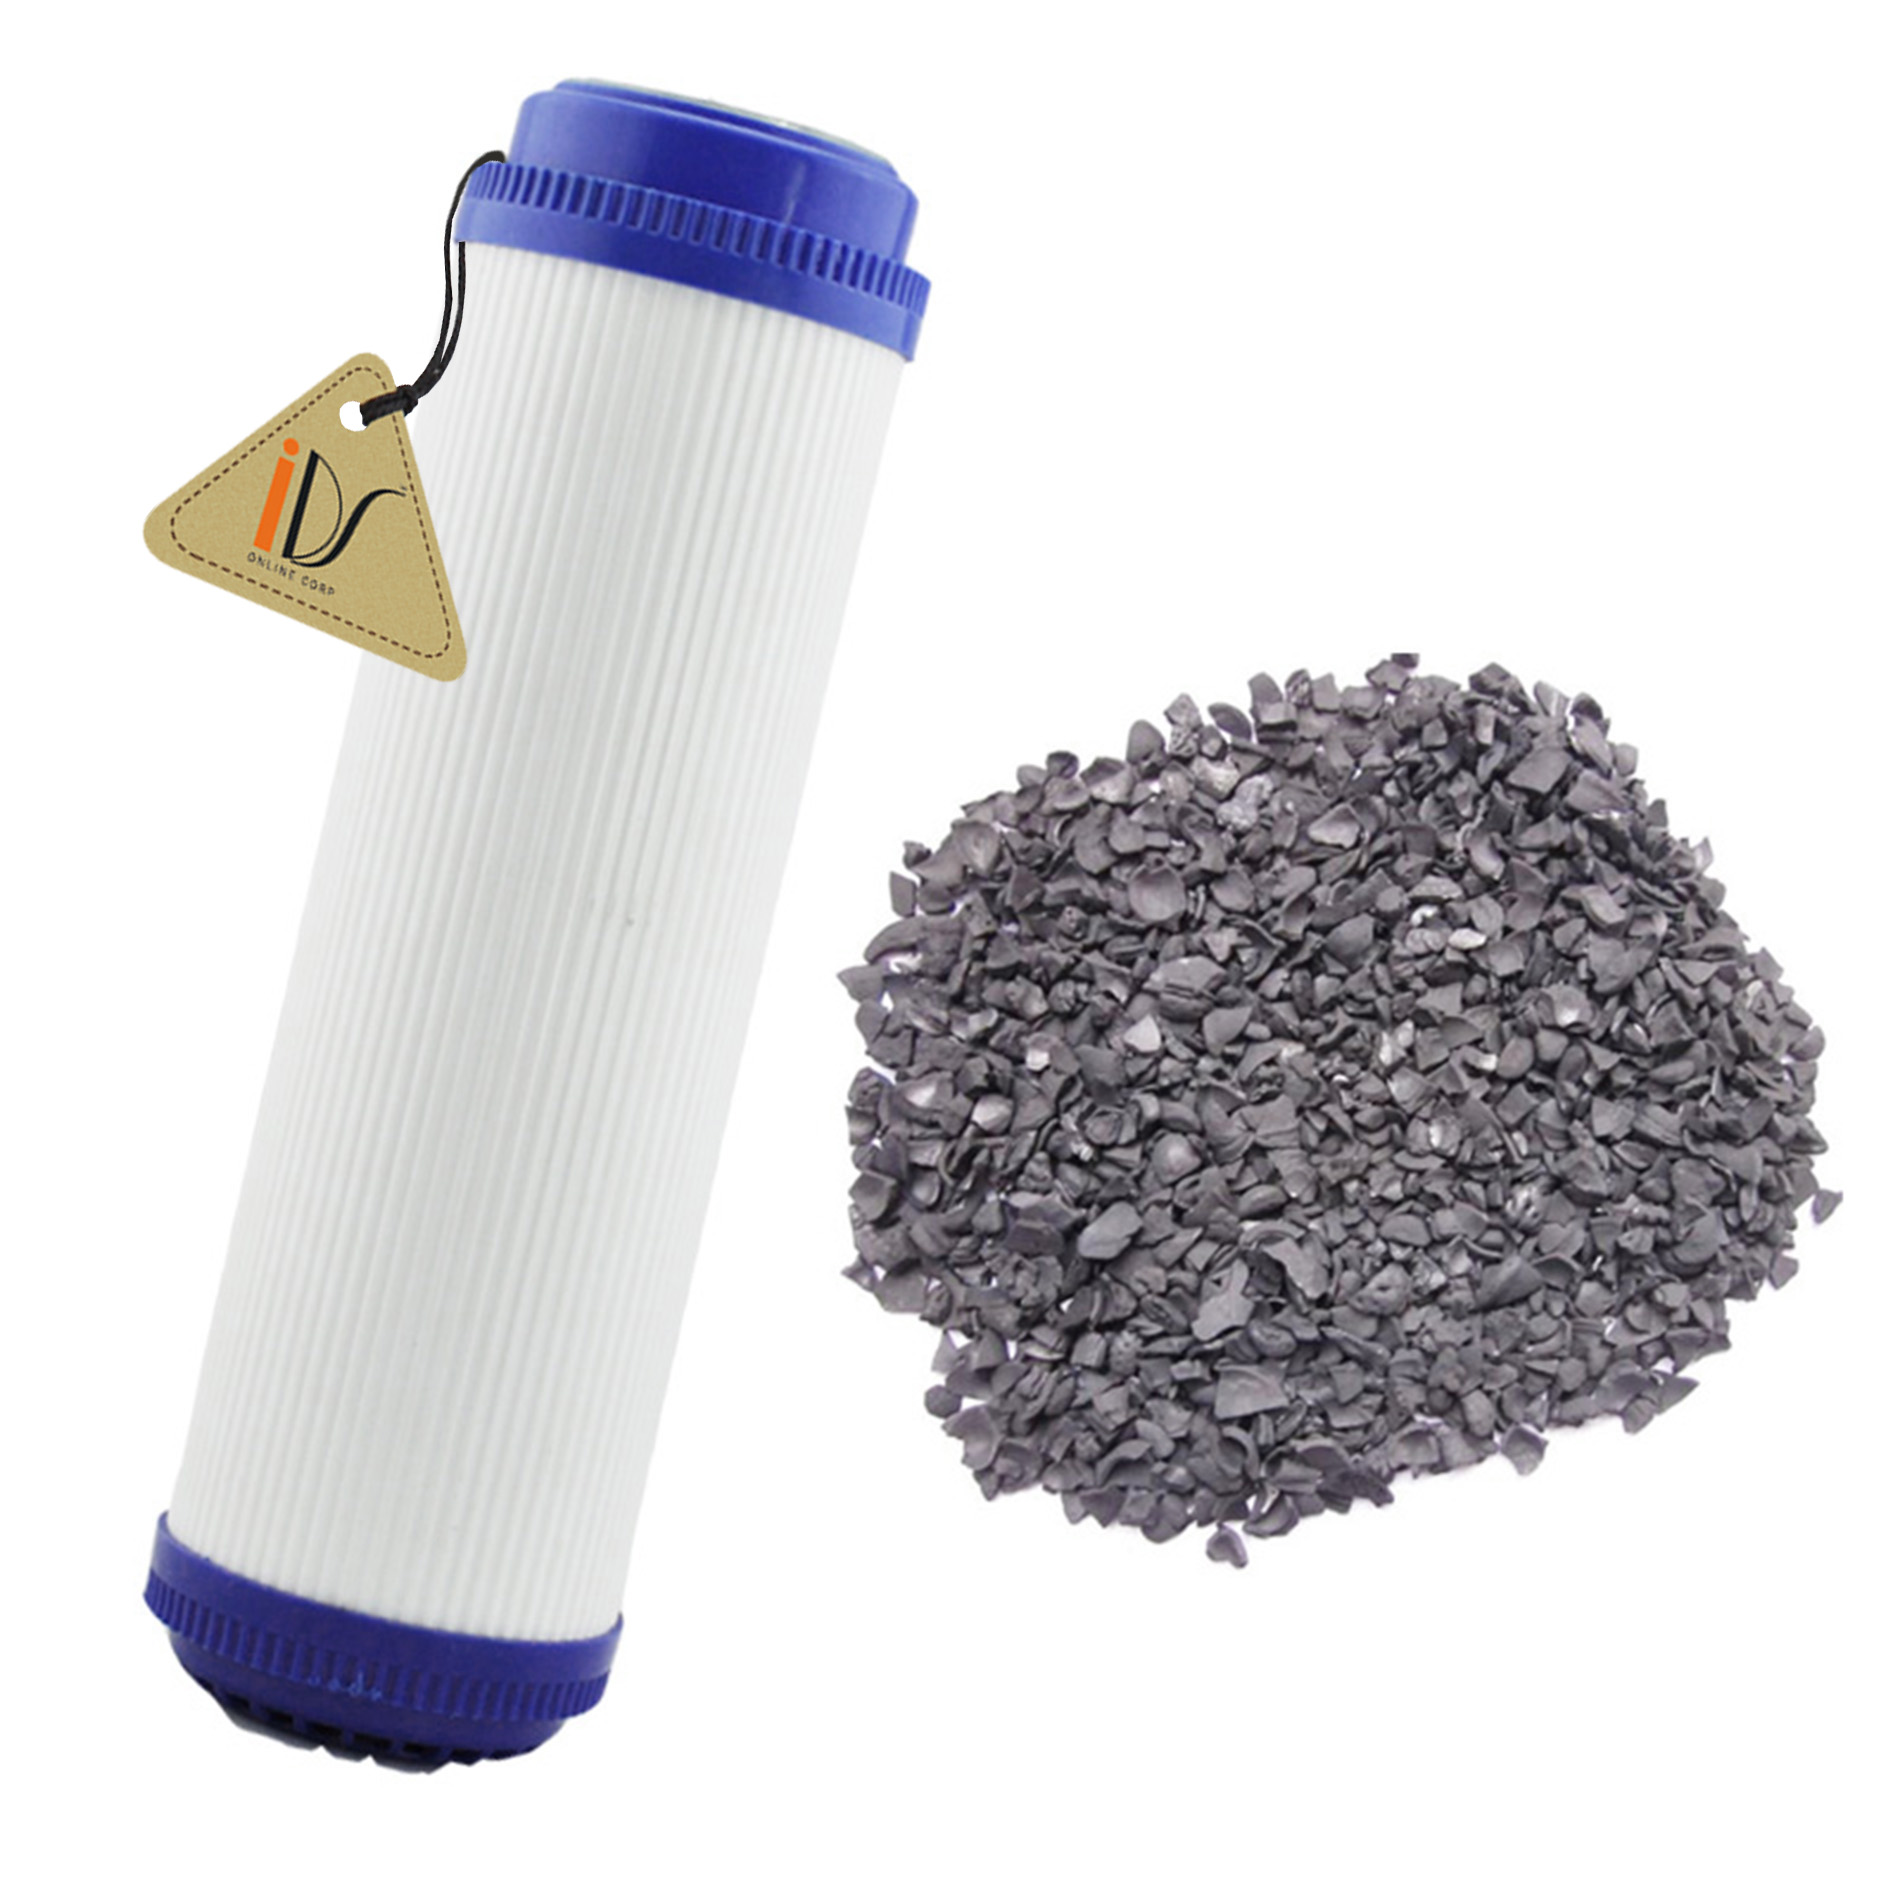 Granular Activated Carbon GAC Water Filter Cartridge for RO Reverse Osmosis, 10 inch